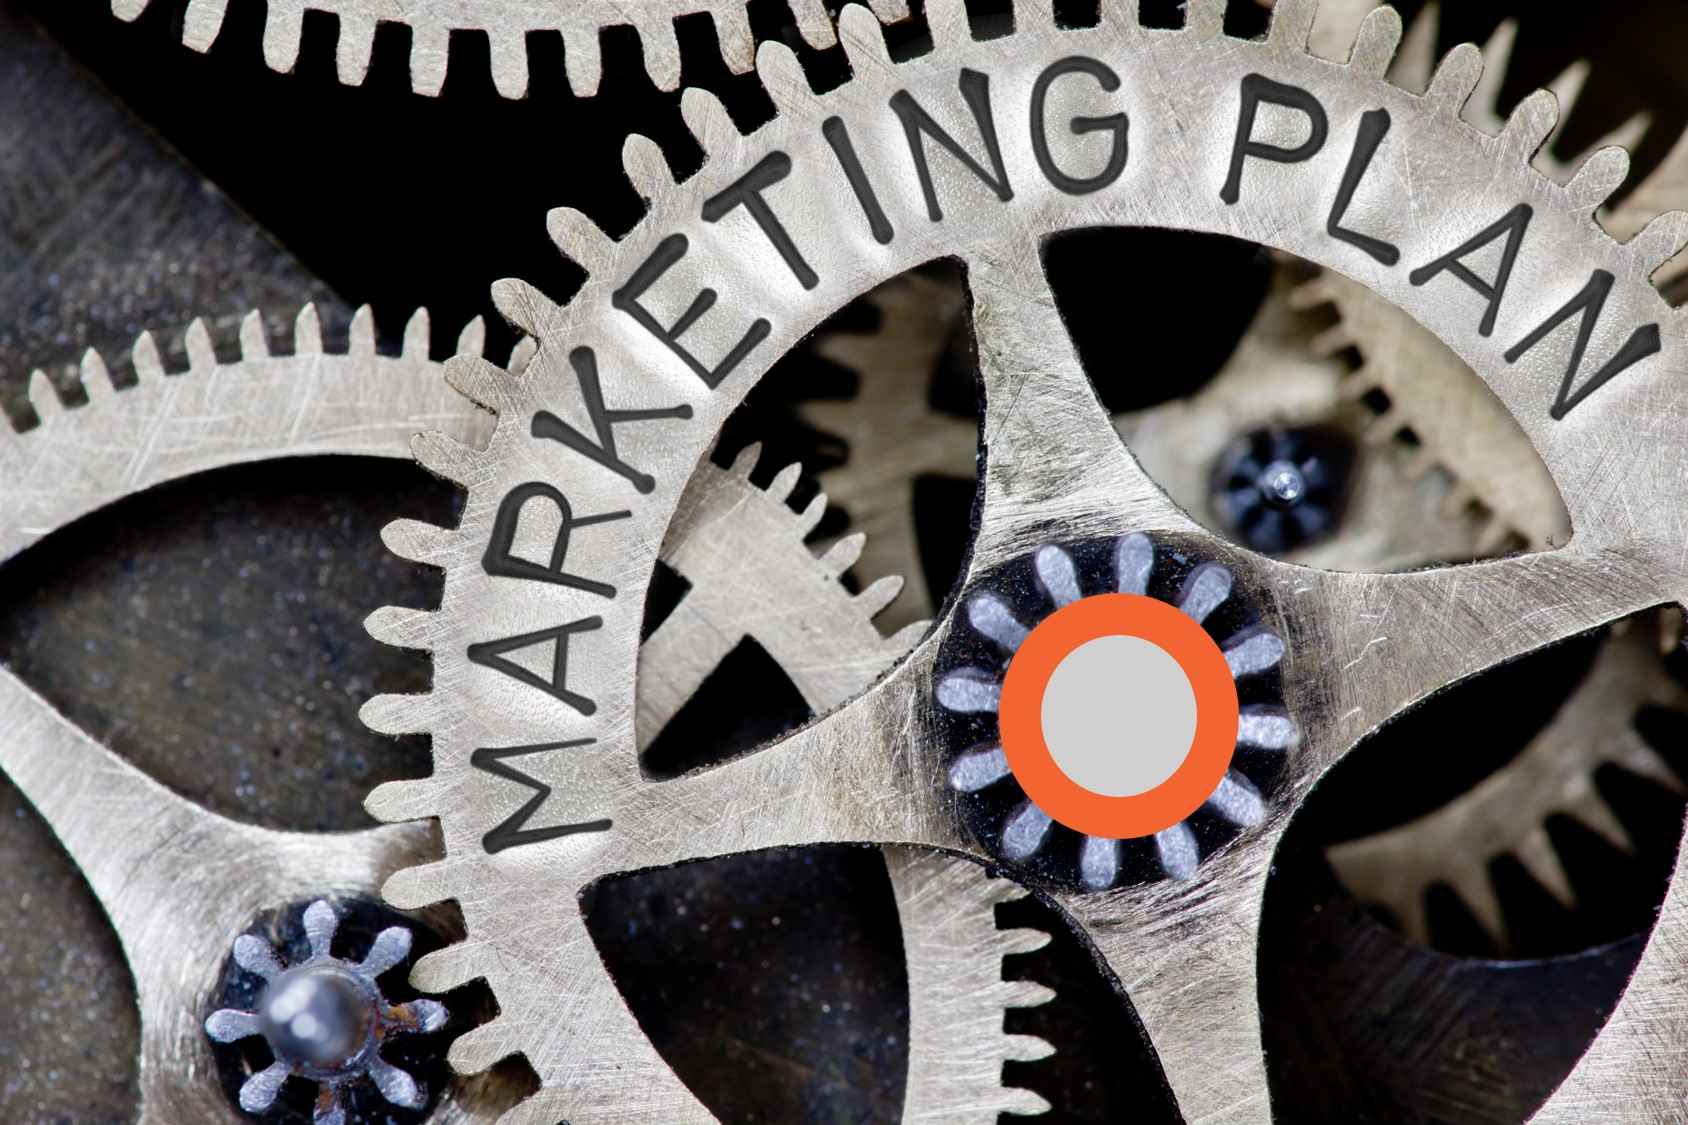 Rivet MRO Industrial Distributor Marketing Agency Helps with Co-op Marketing Plan